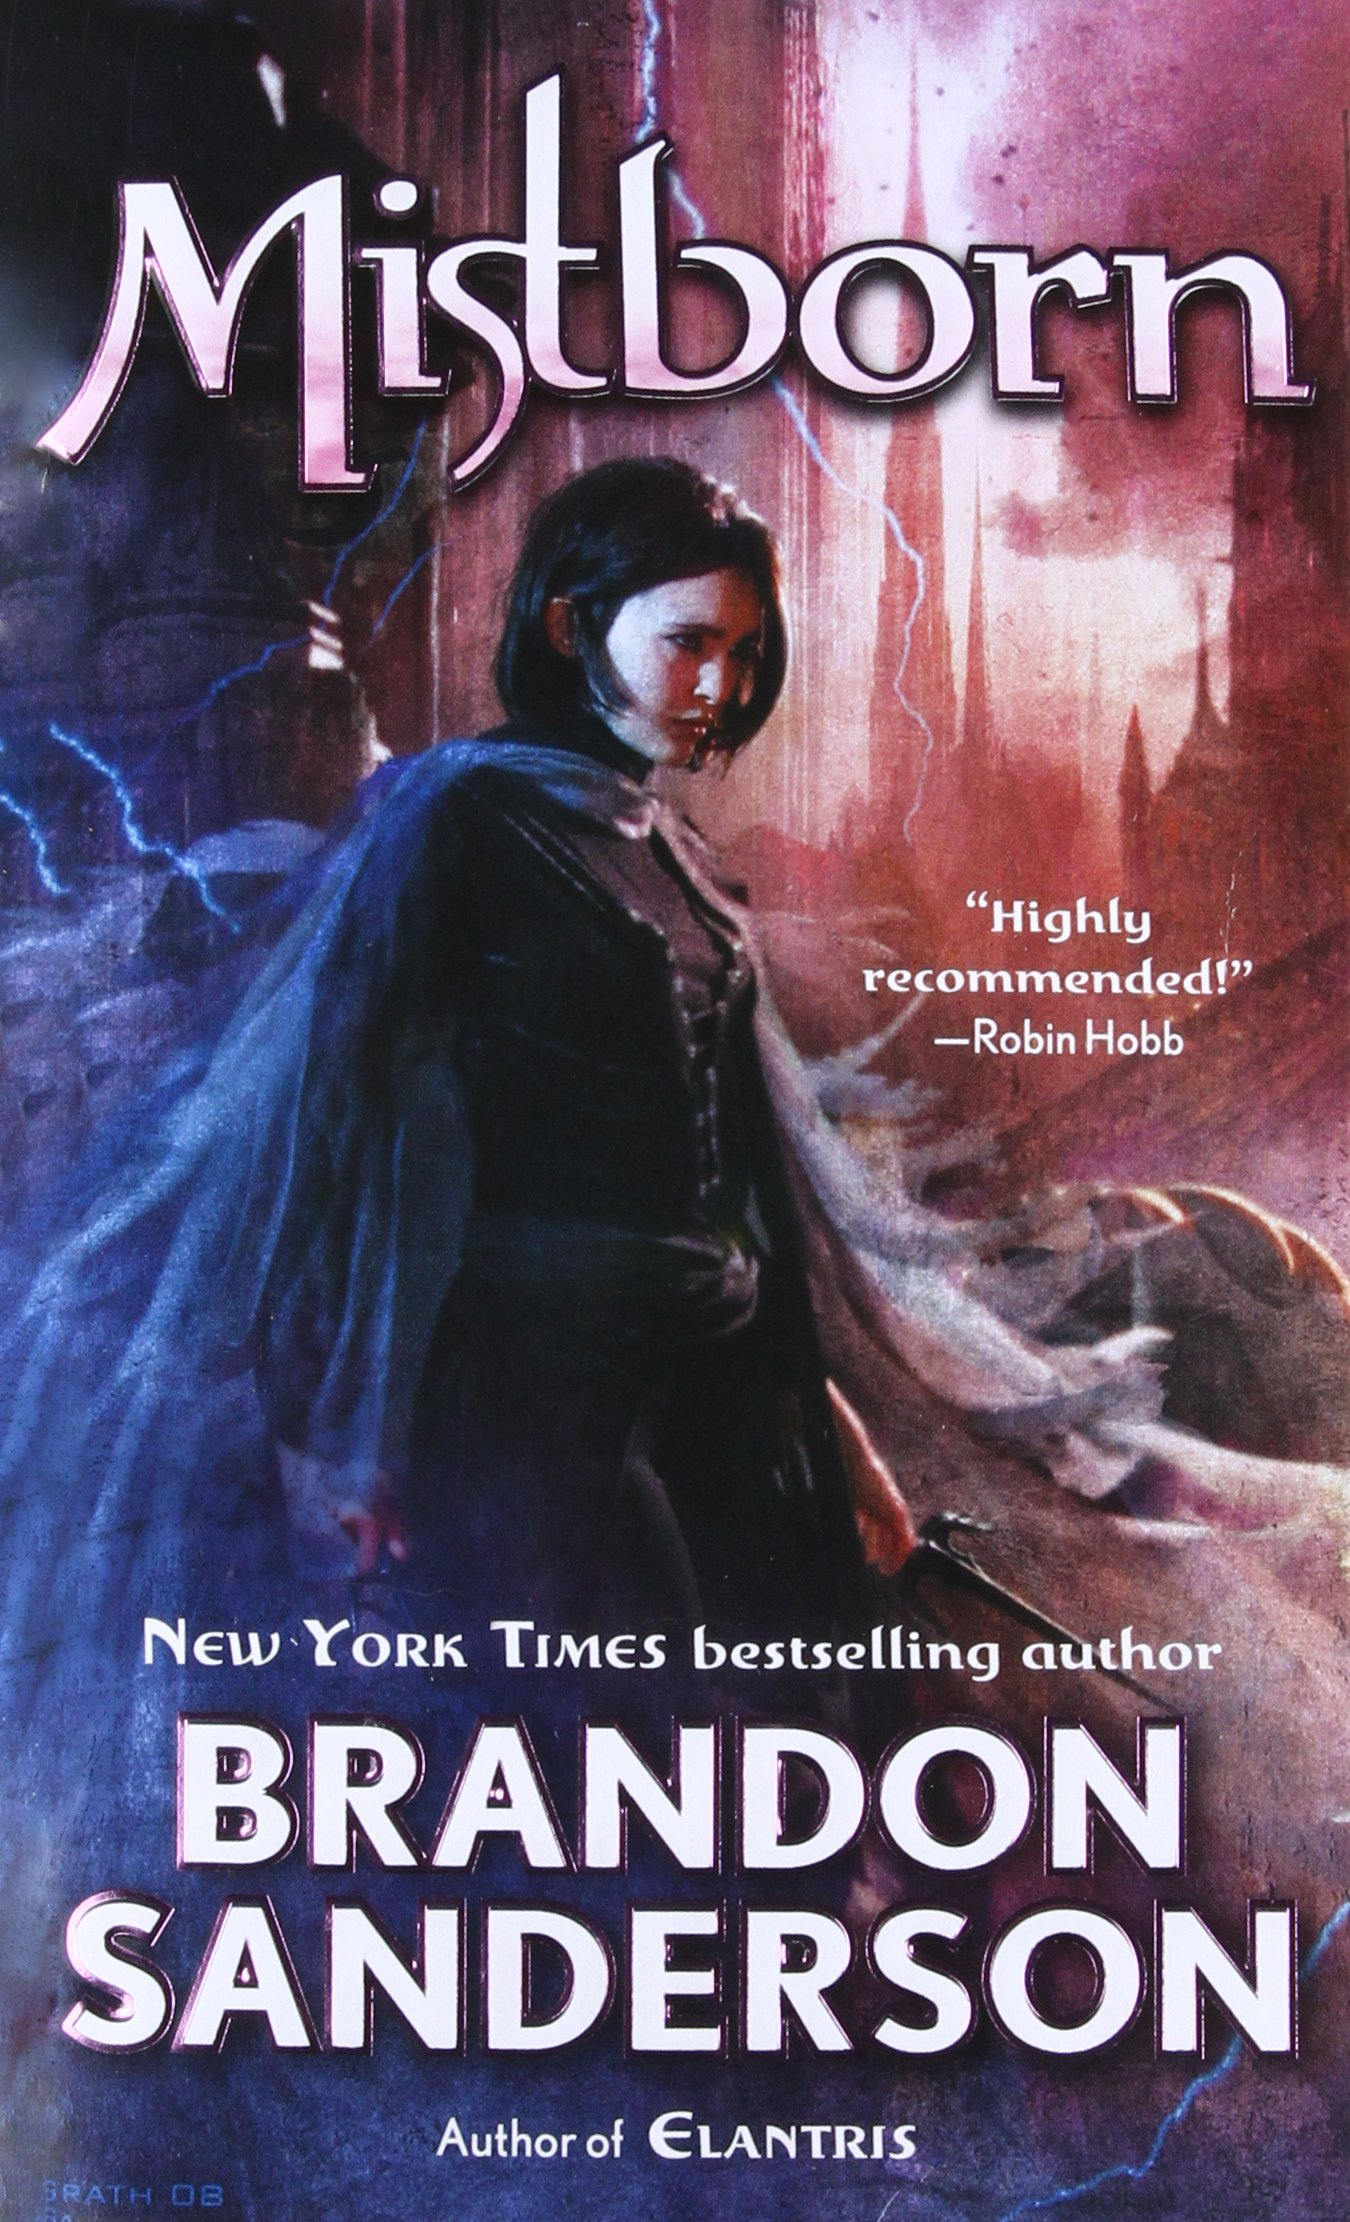 Mistborn: The Final Empire: Sanderson, Brandon: 8601419297900 ...